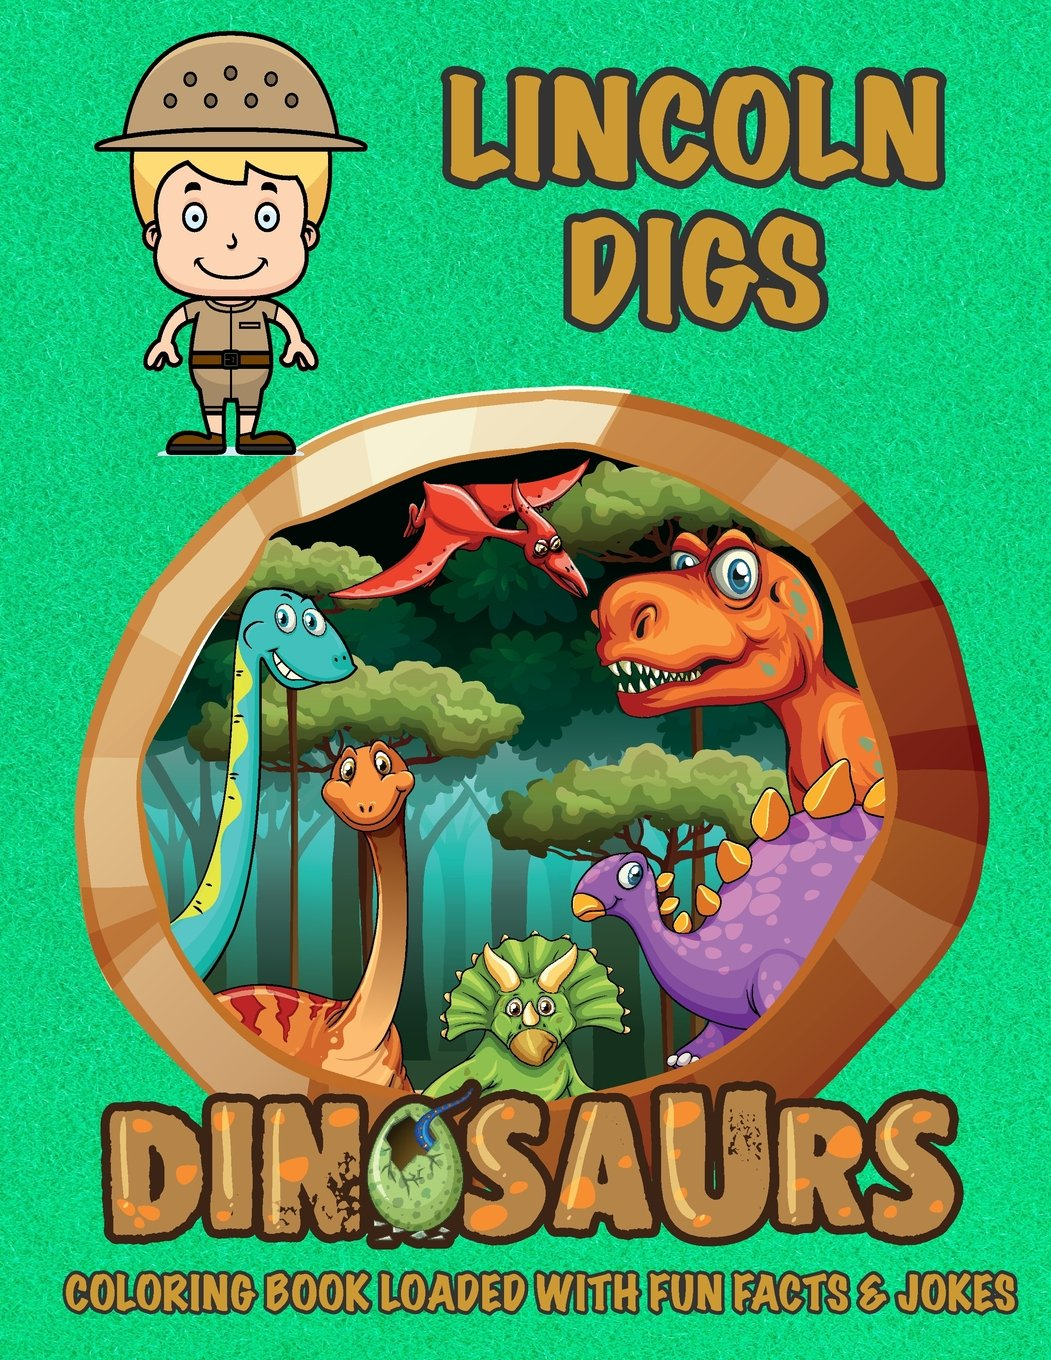 Read Online Lincoln Digs Dinosaurs Coloring Book Loaded With Fun Facts & Jokes (Personalized Books for Children) PDF